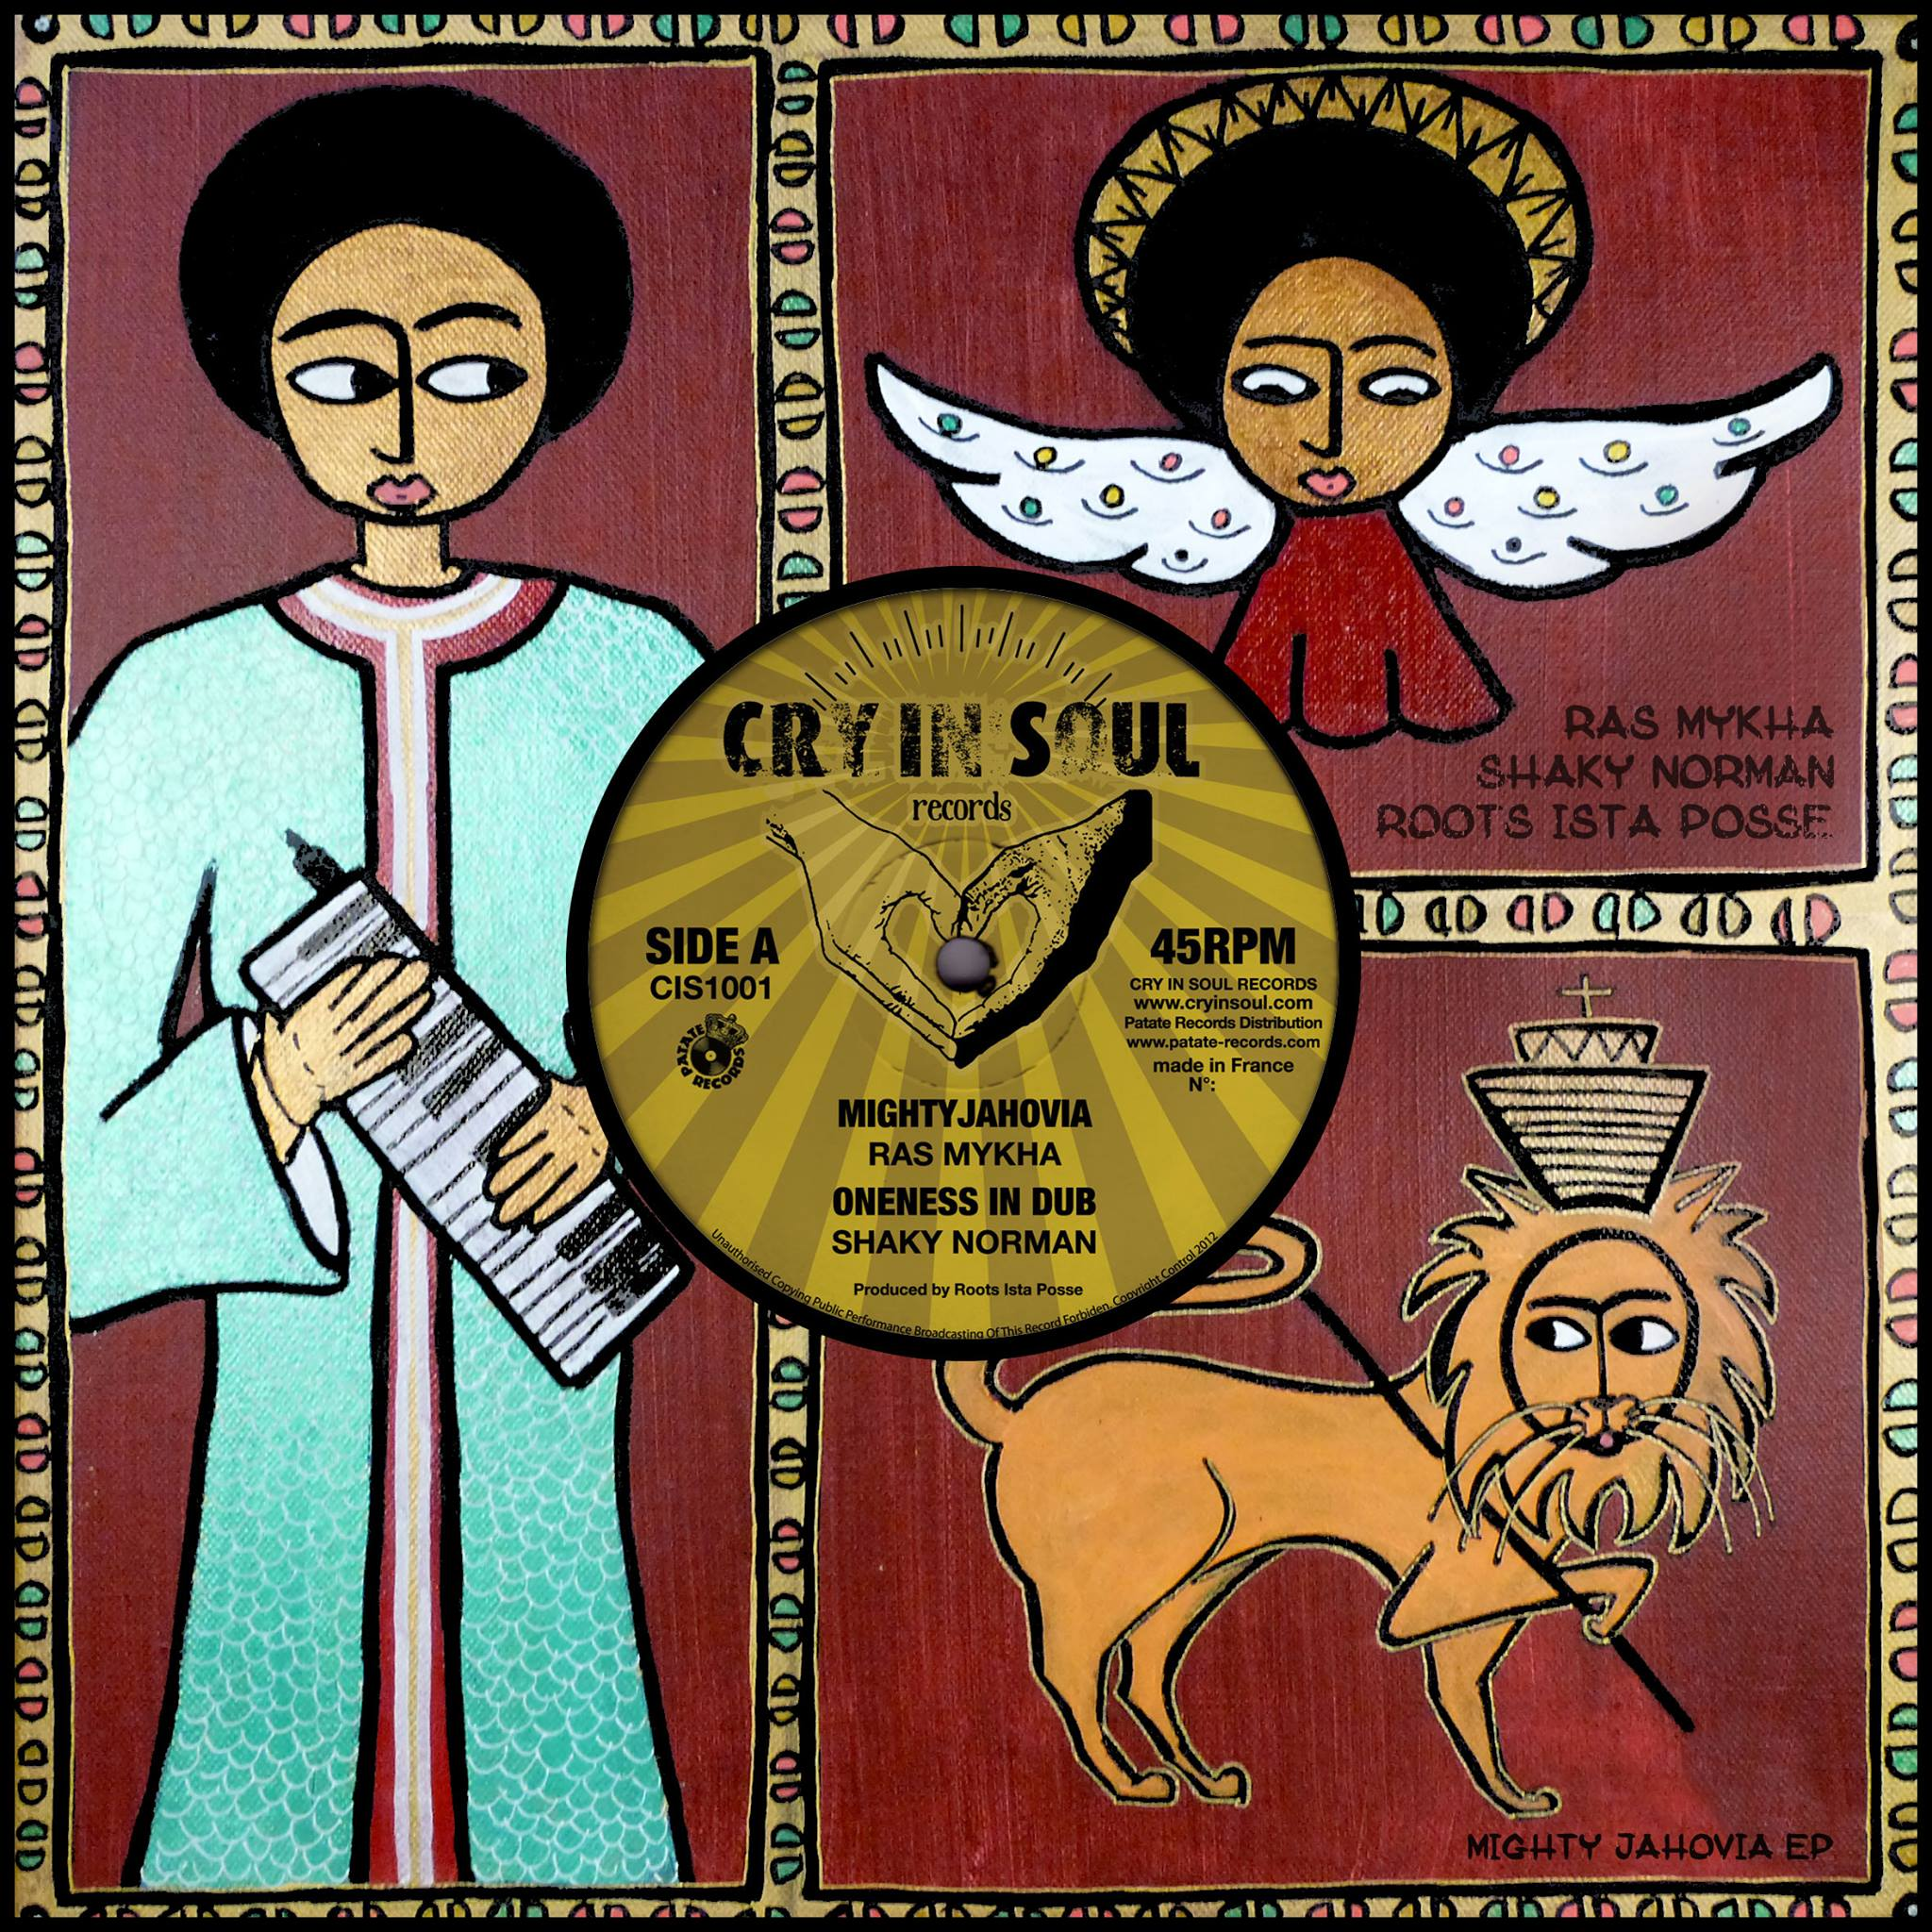 Ras Mykha - Cry'In Soul Records CIS-1001